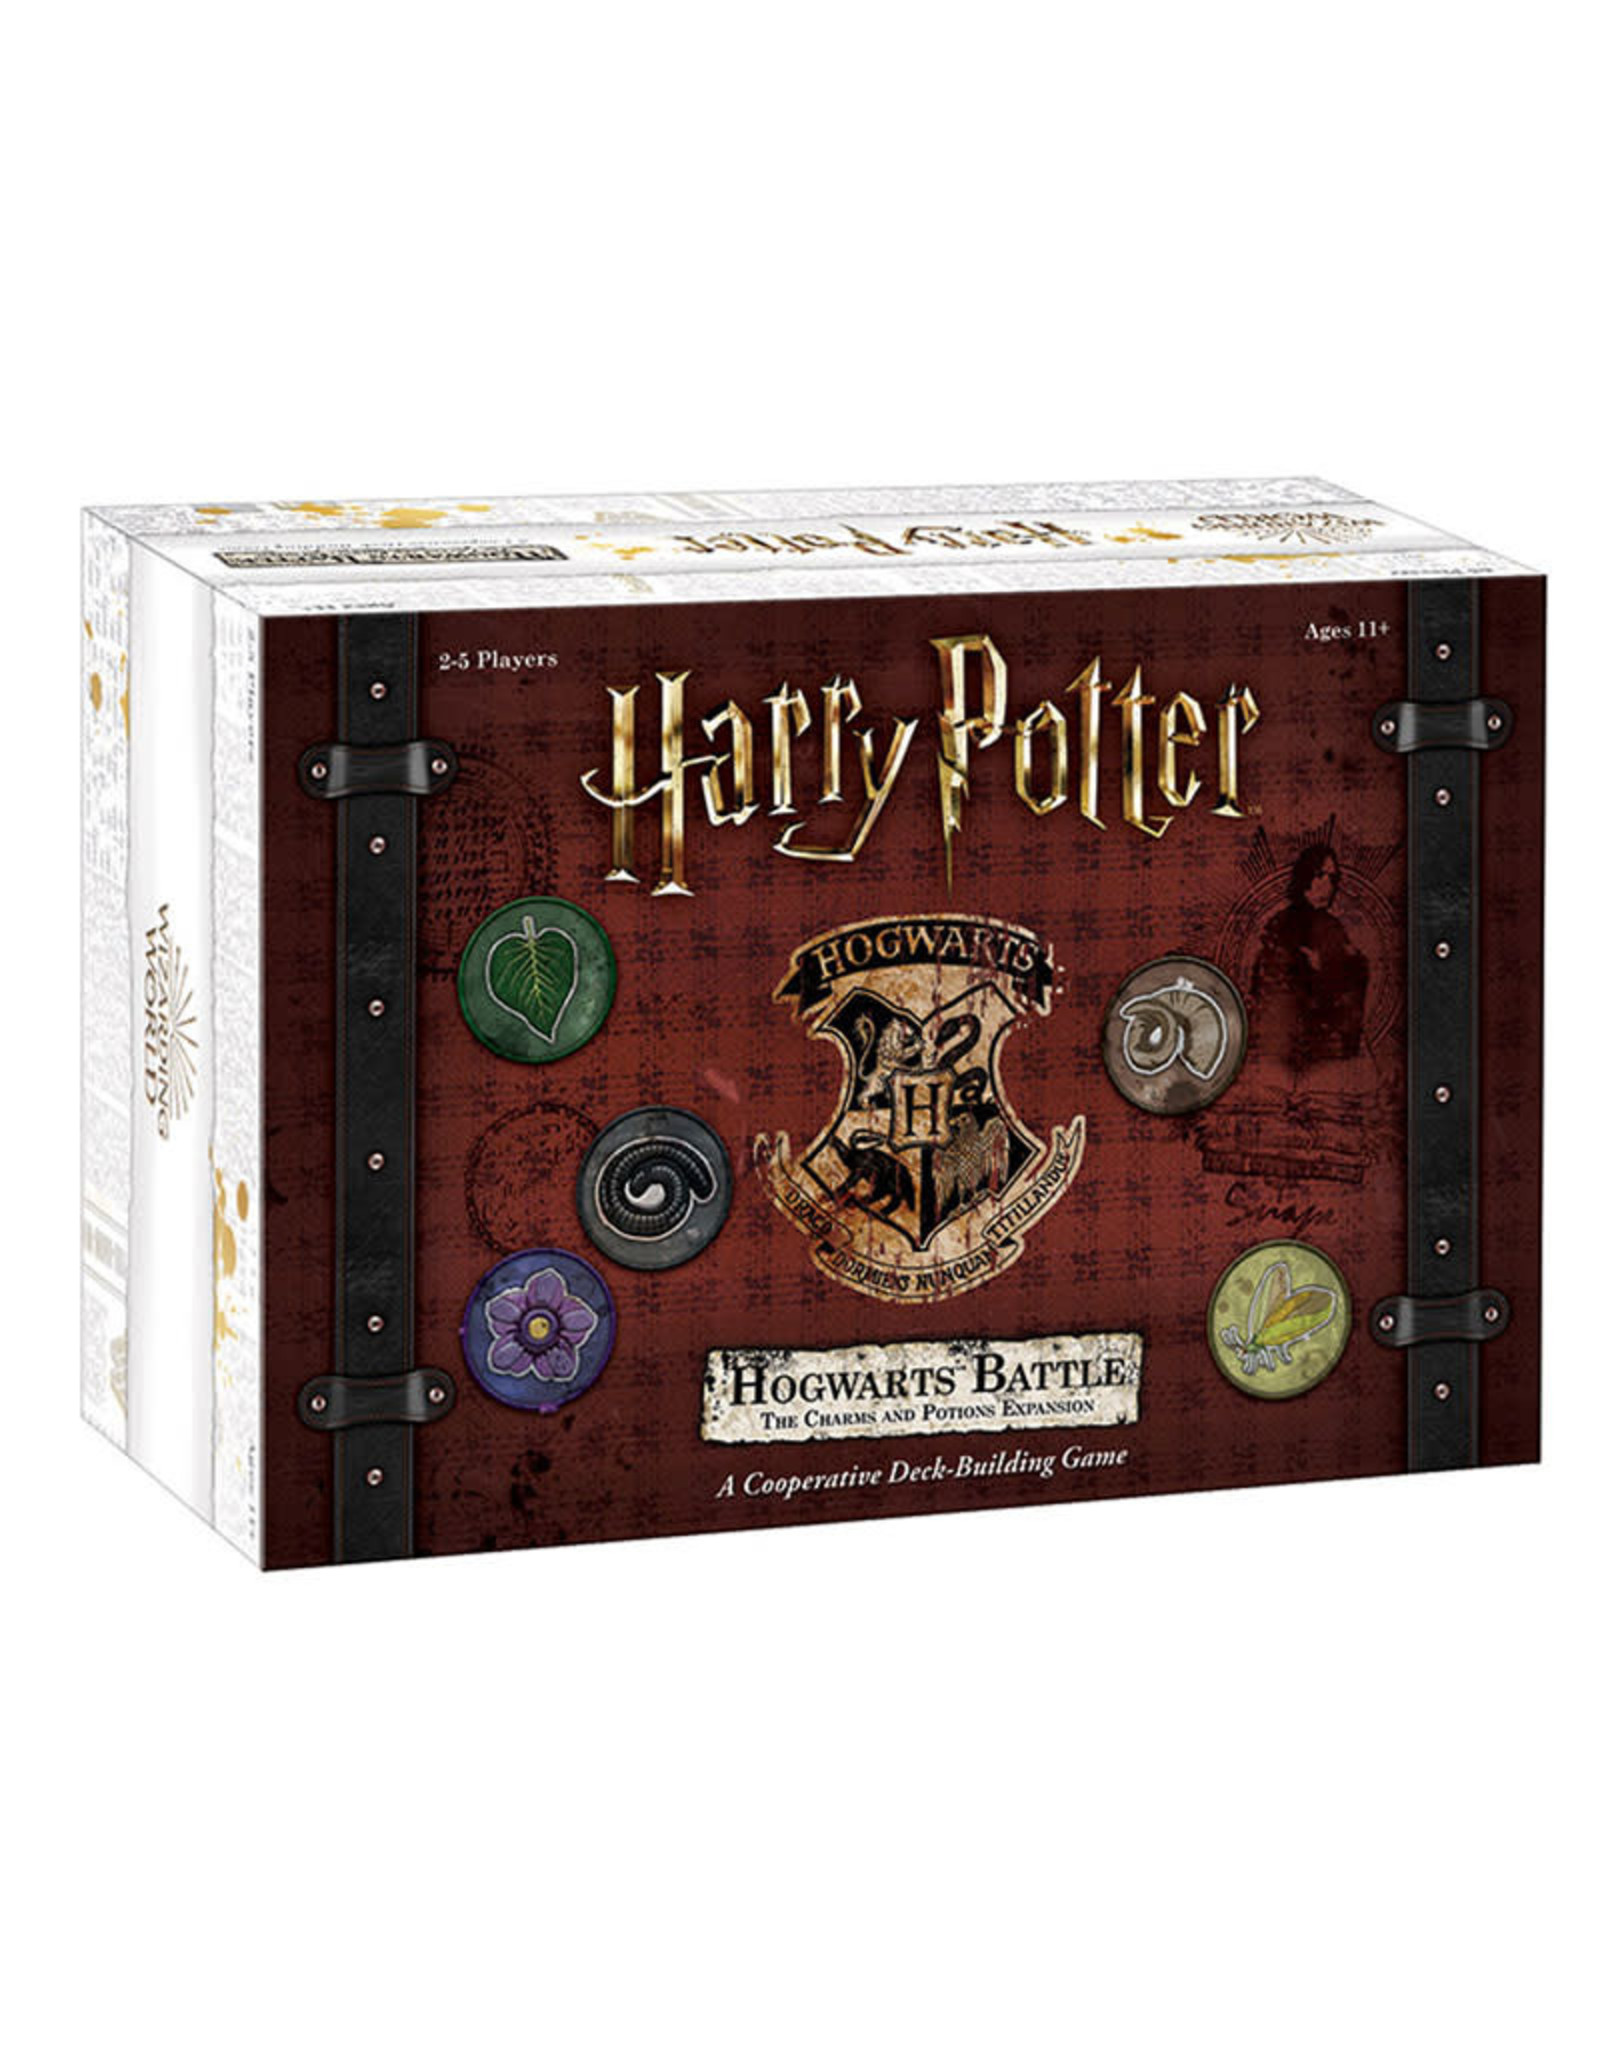 USAopoly Harry Potter Hogwarts Battle Charms and Potions